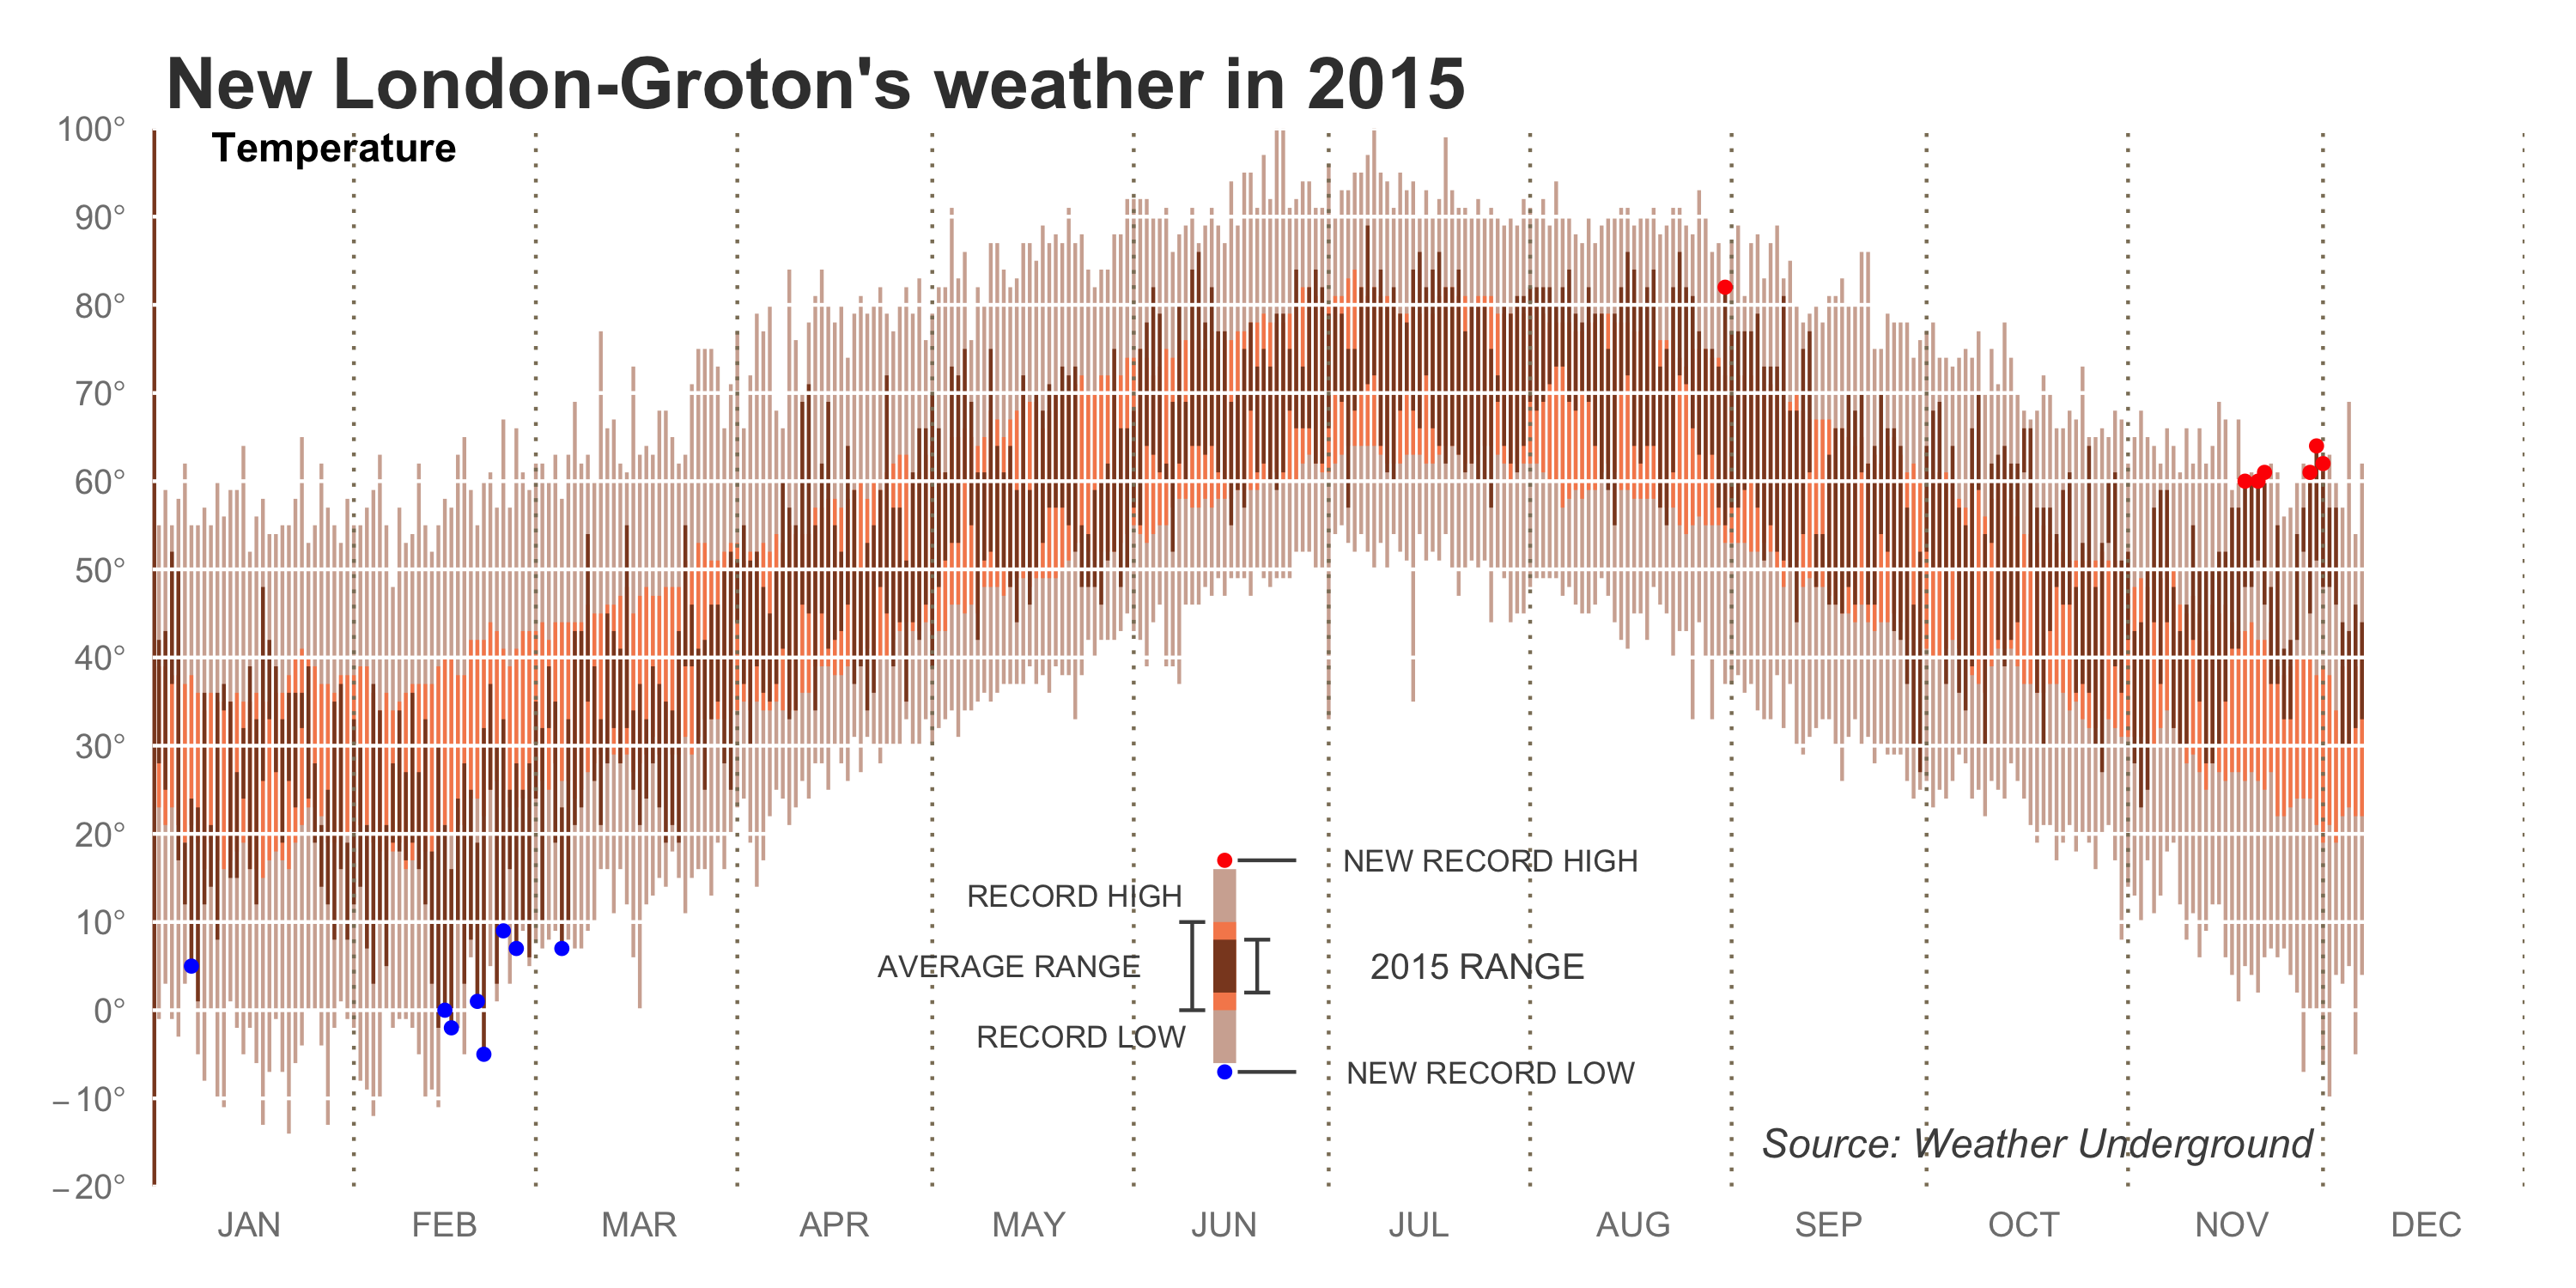 New London-Groton weather